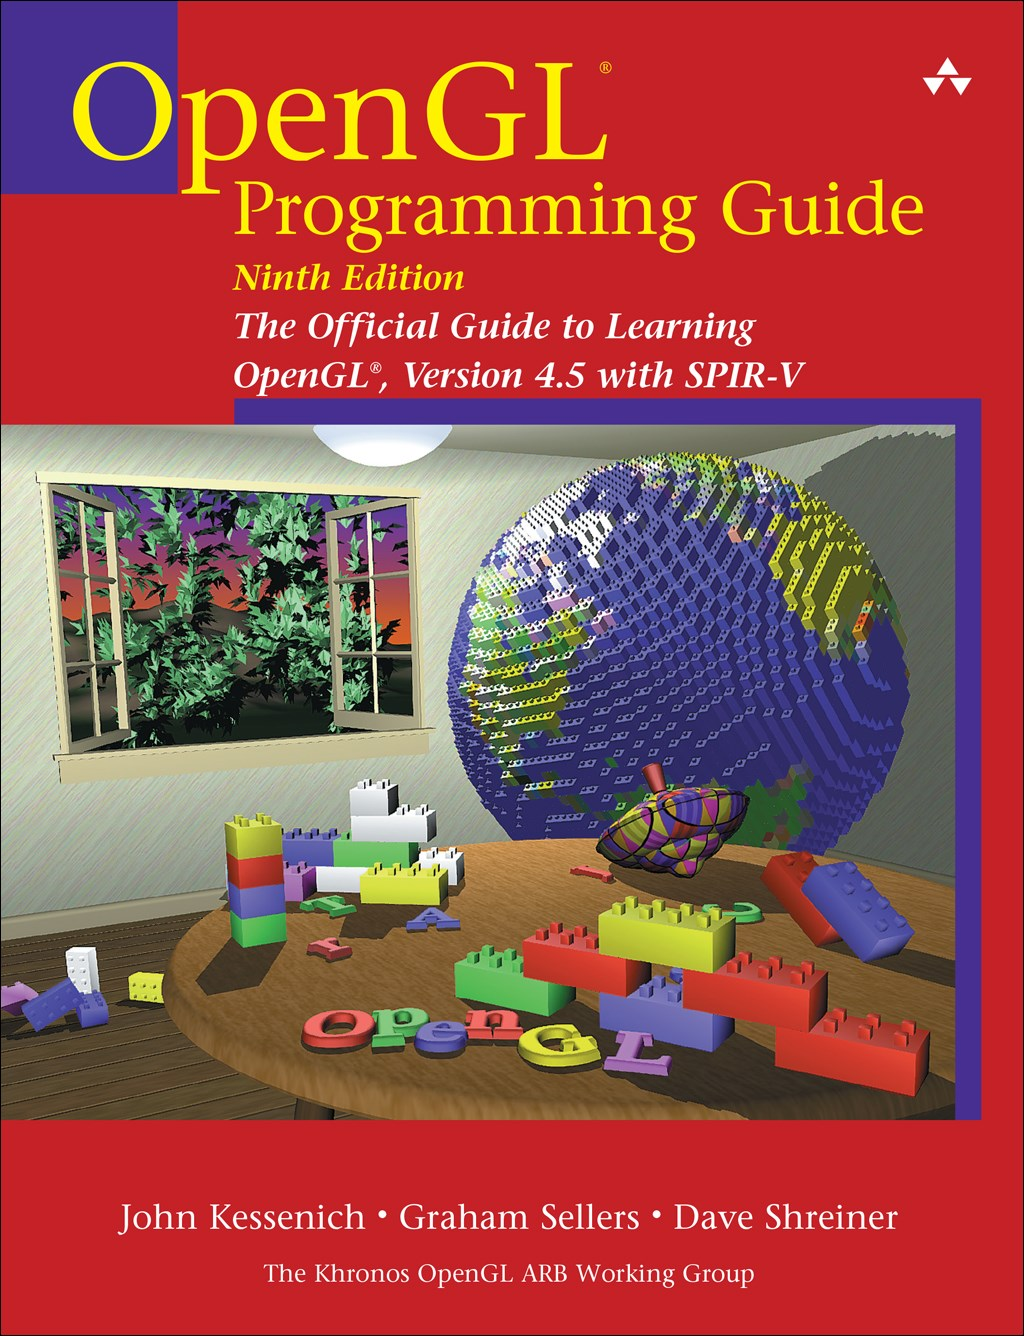 OpenGL Programming Guide: The Official Guide to Learning OpenGL, Version 4.5 with SPIR-V, 9th Edition